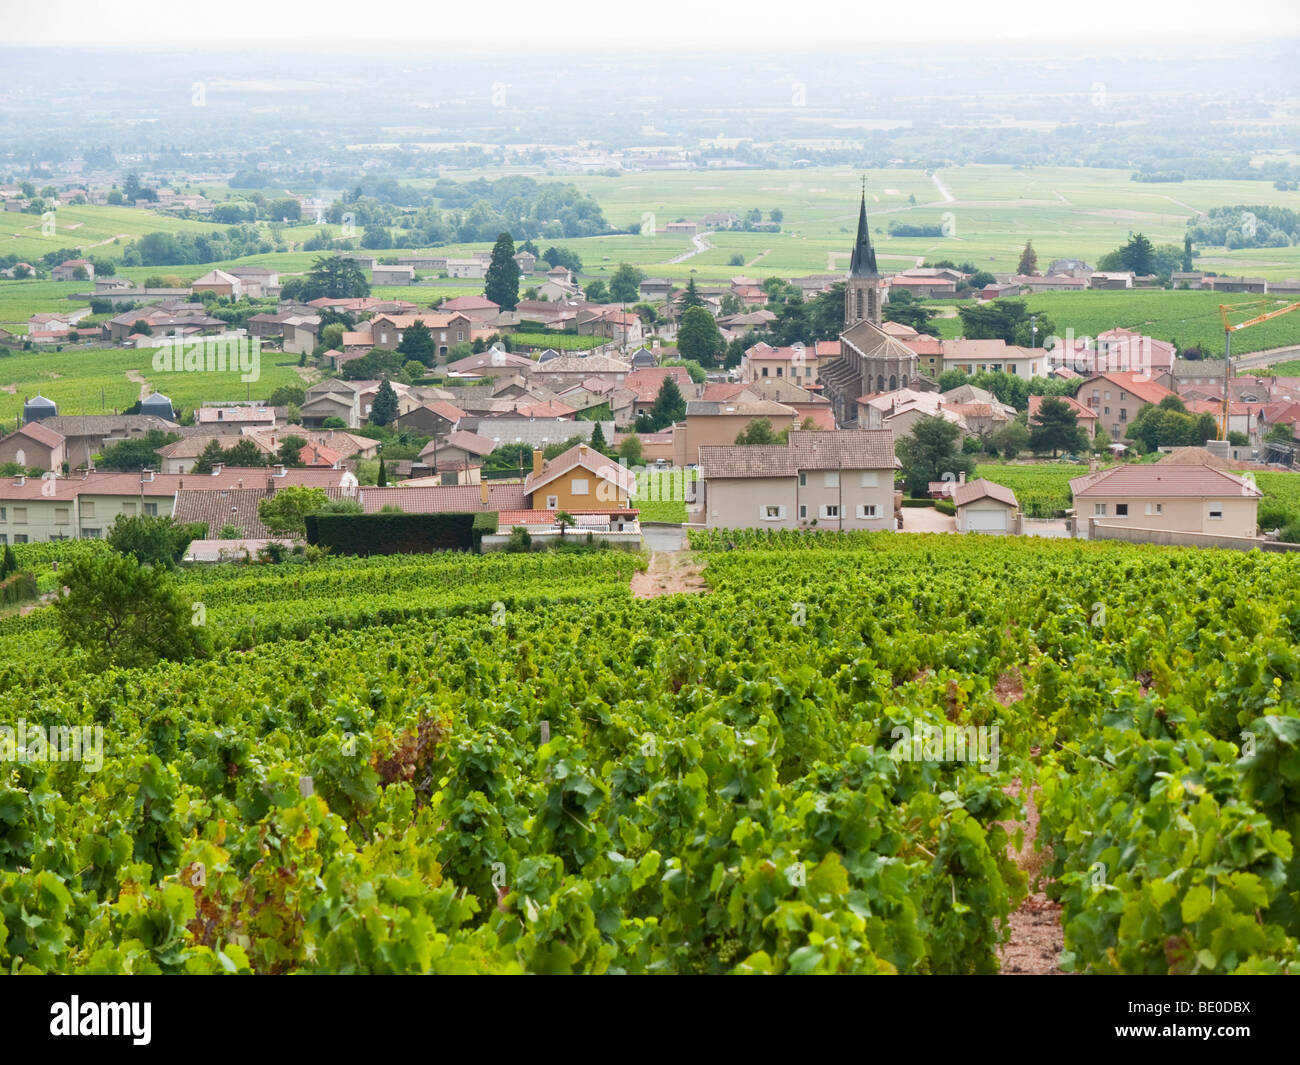 A view over the village of Fleurie amidst the Beaujolais vineyards. - Stock Image